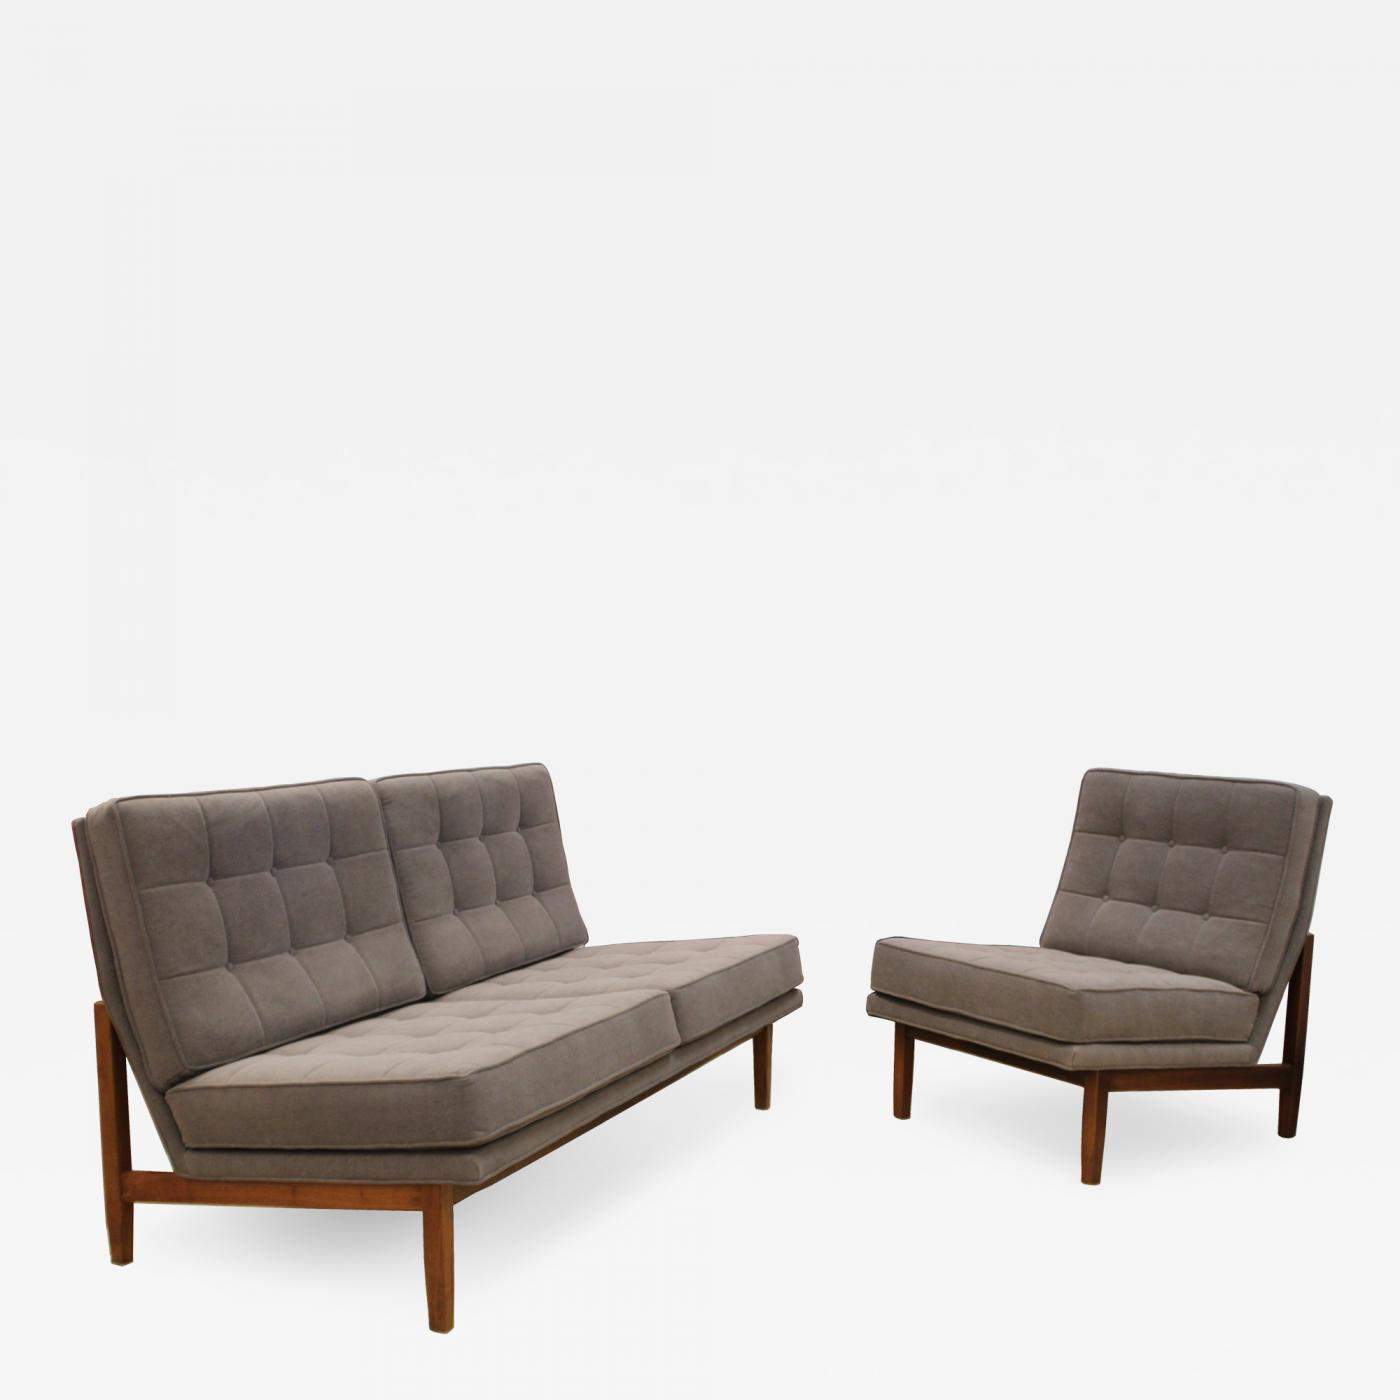 Listings   Furniture   Seating   Settees   Knoll Mid Century Modern. Knoll   Mid Century Modern Early Rare Knoll Settee and Chair Model